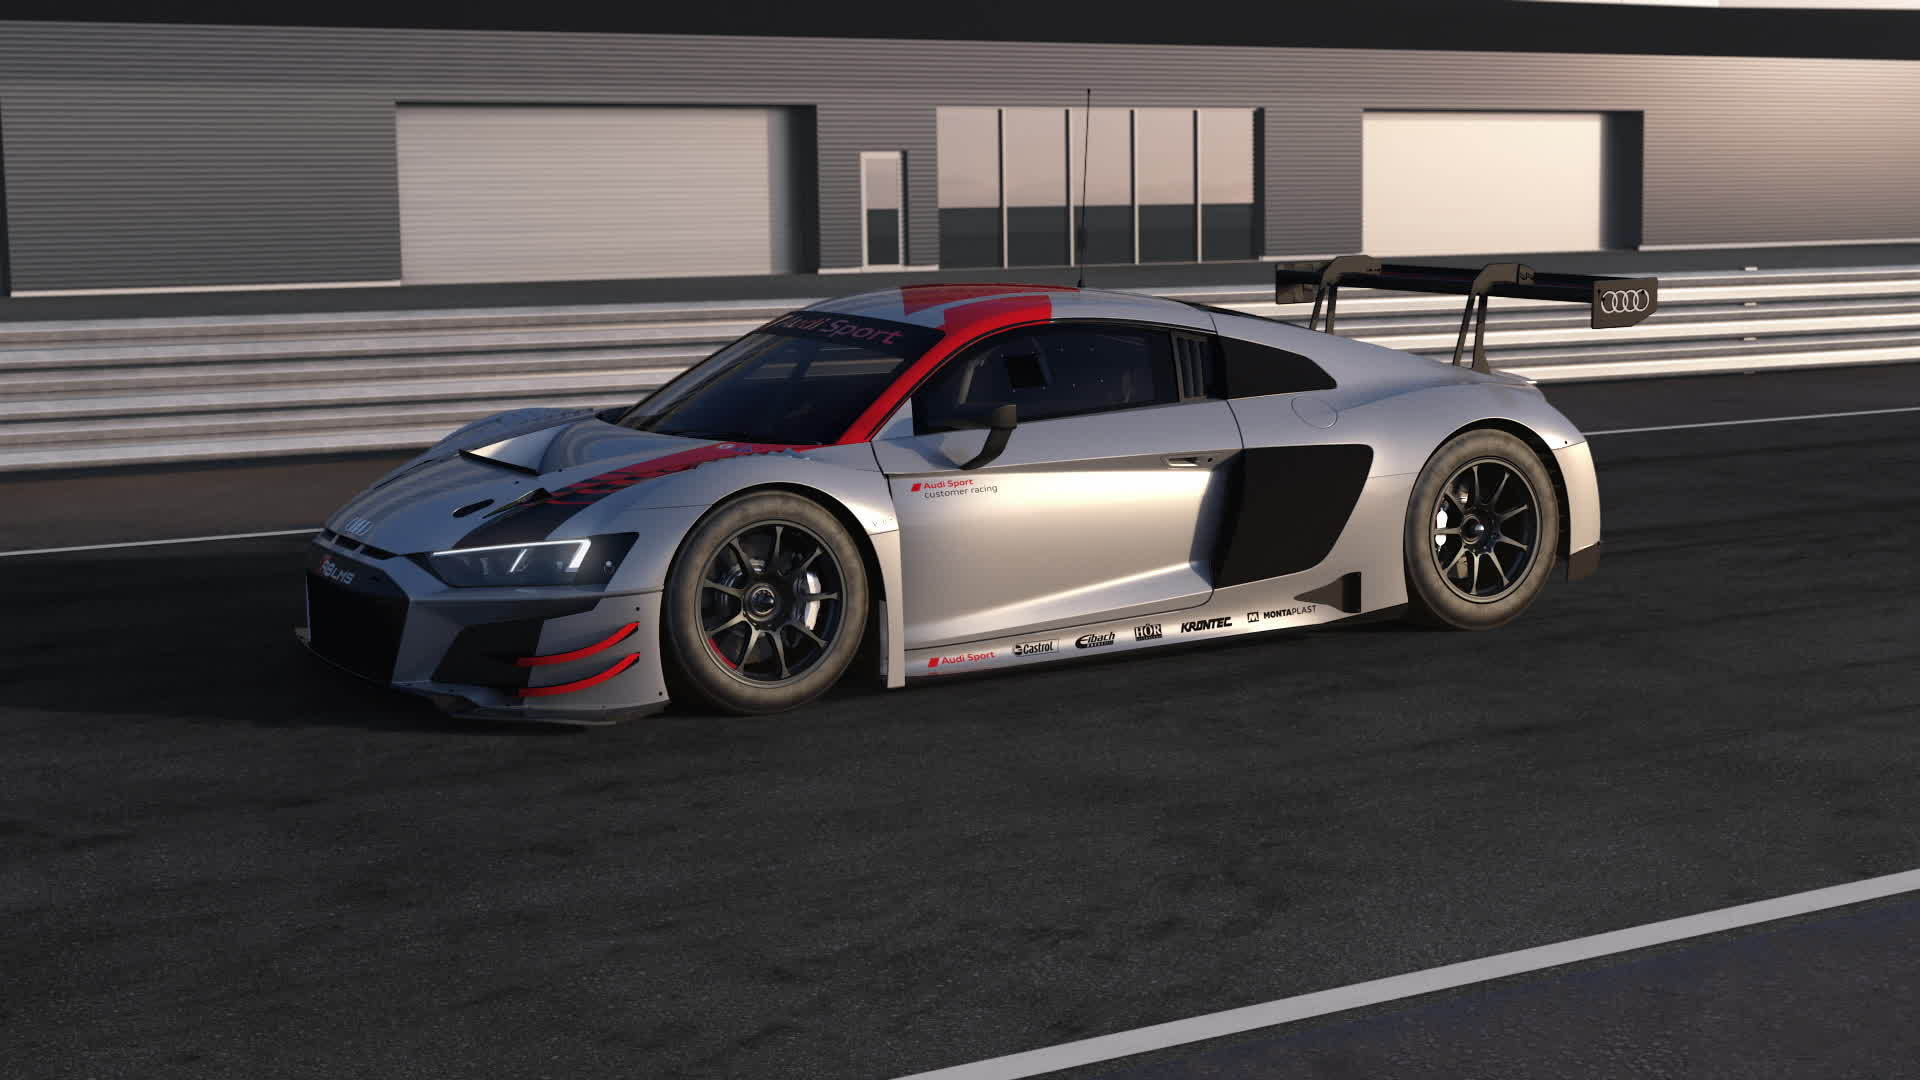 Audi R8 LMS und Audi R8 V10 performance quattro – Safety concept and drive train (Animation)